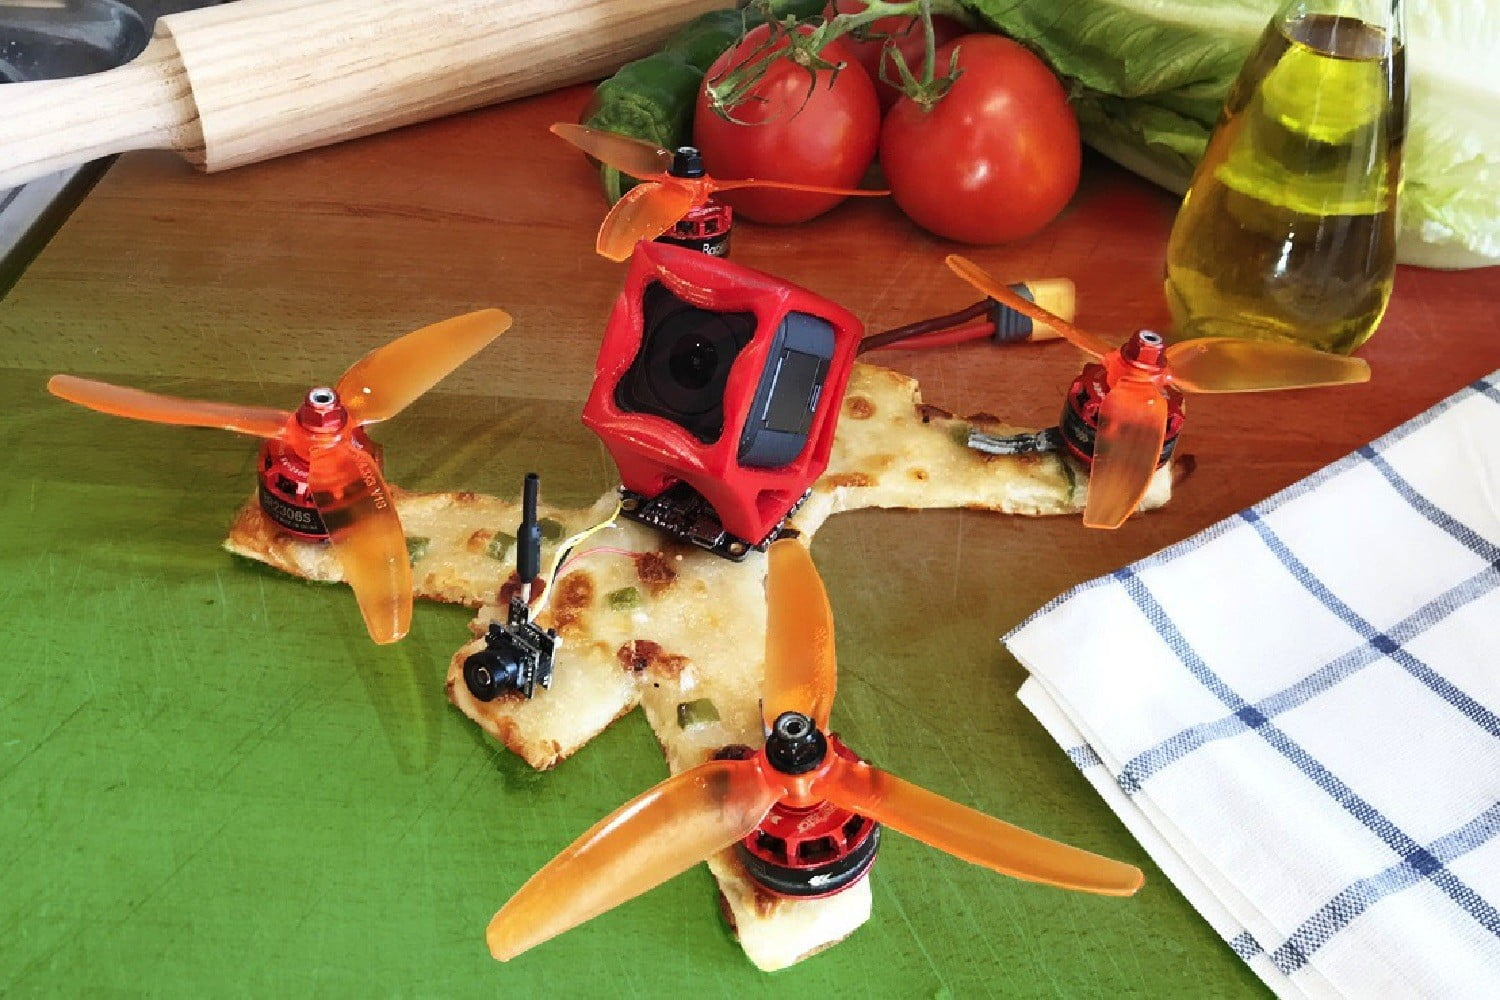 pizza drone project 5373f32a b102 4985 8255 ad77024d0d4d